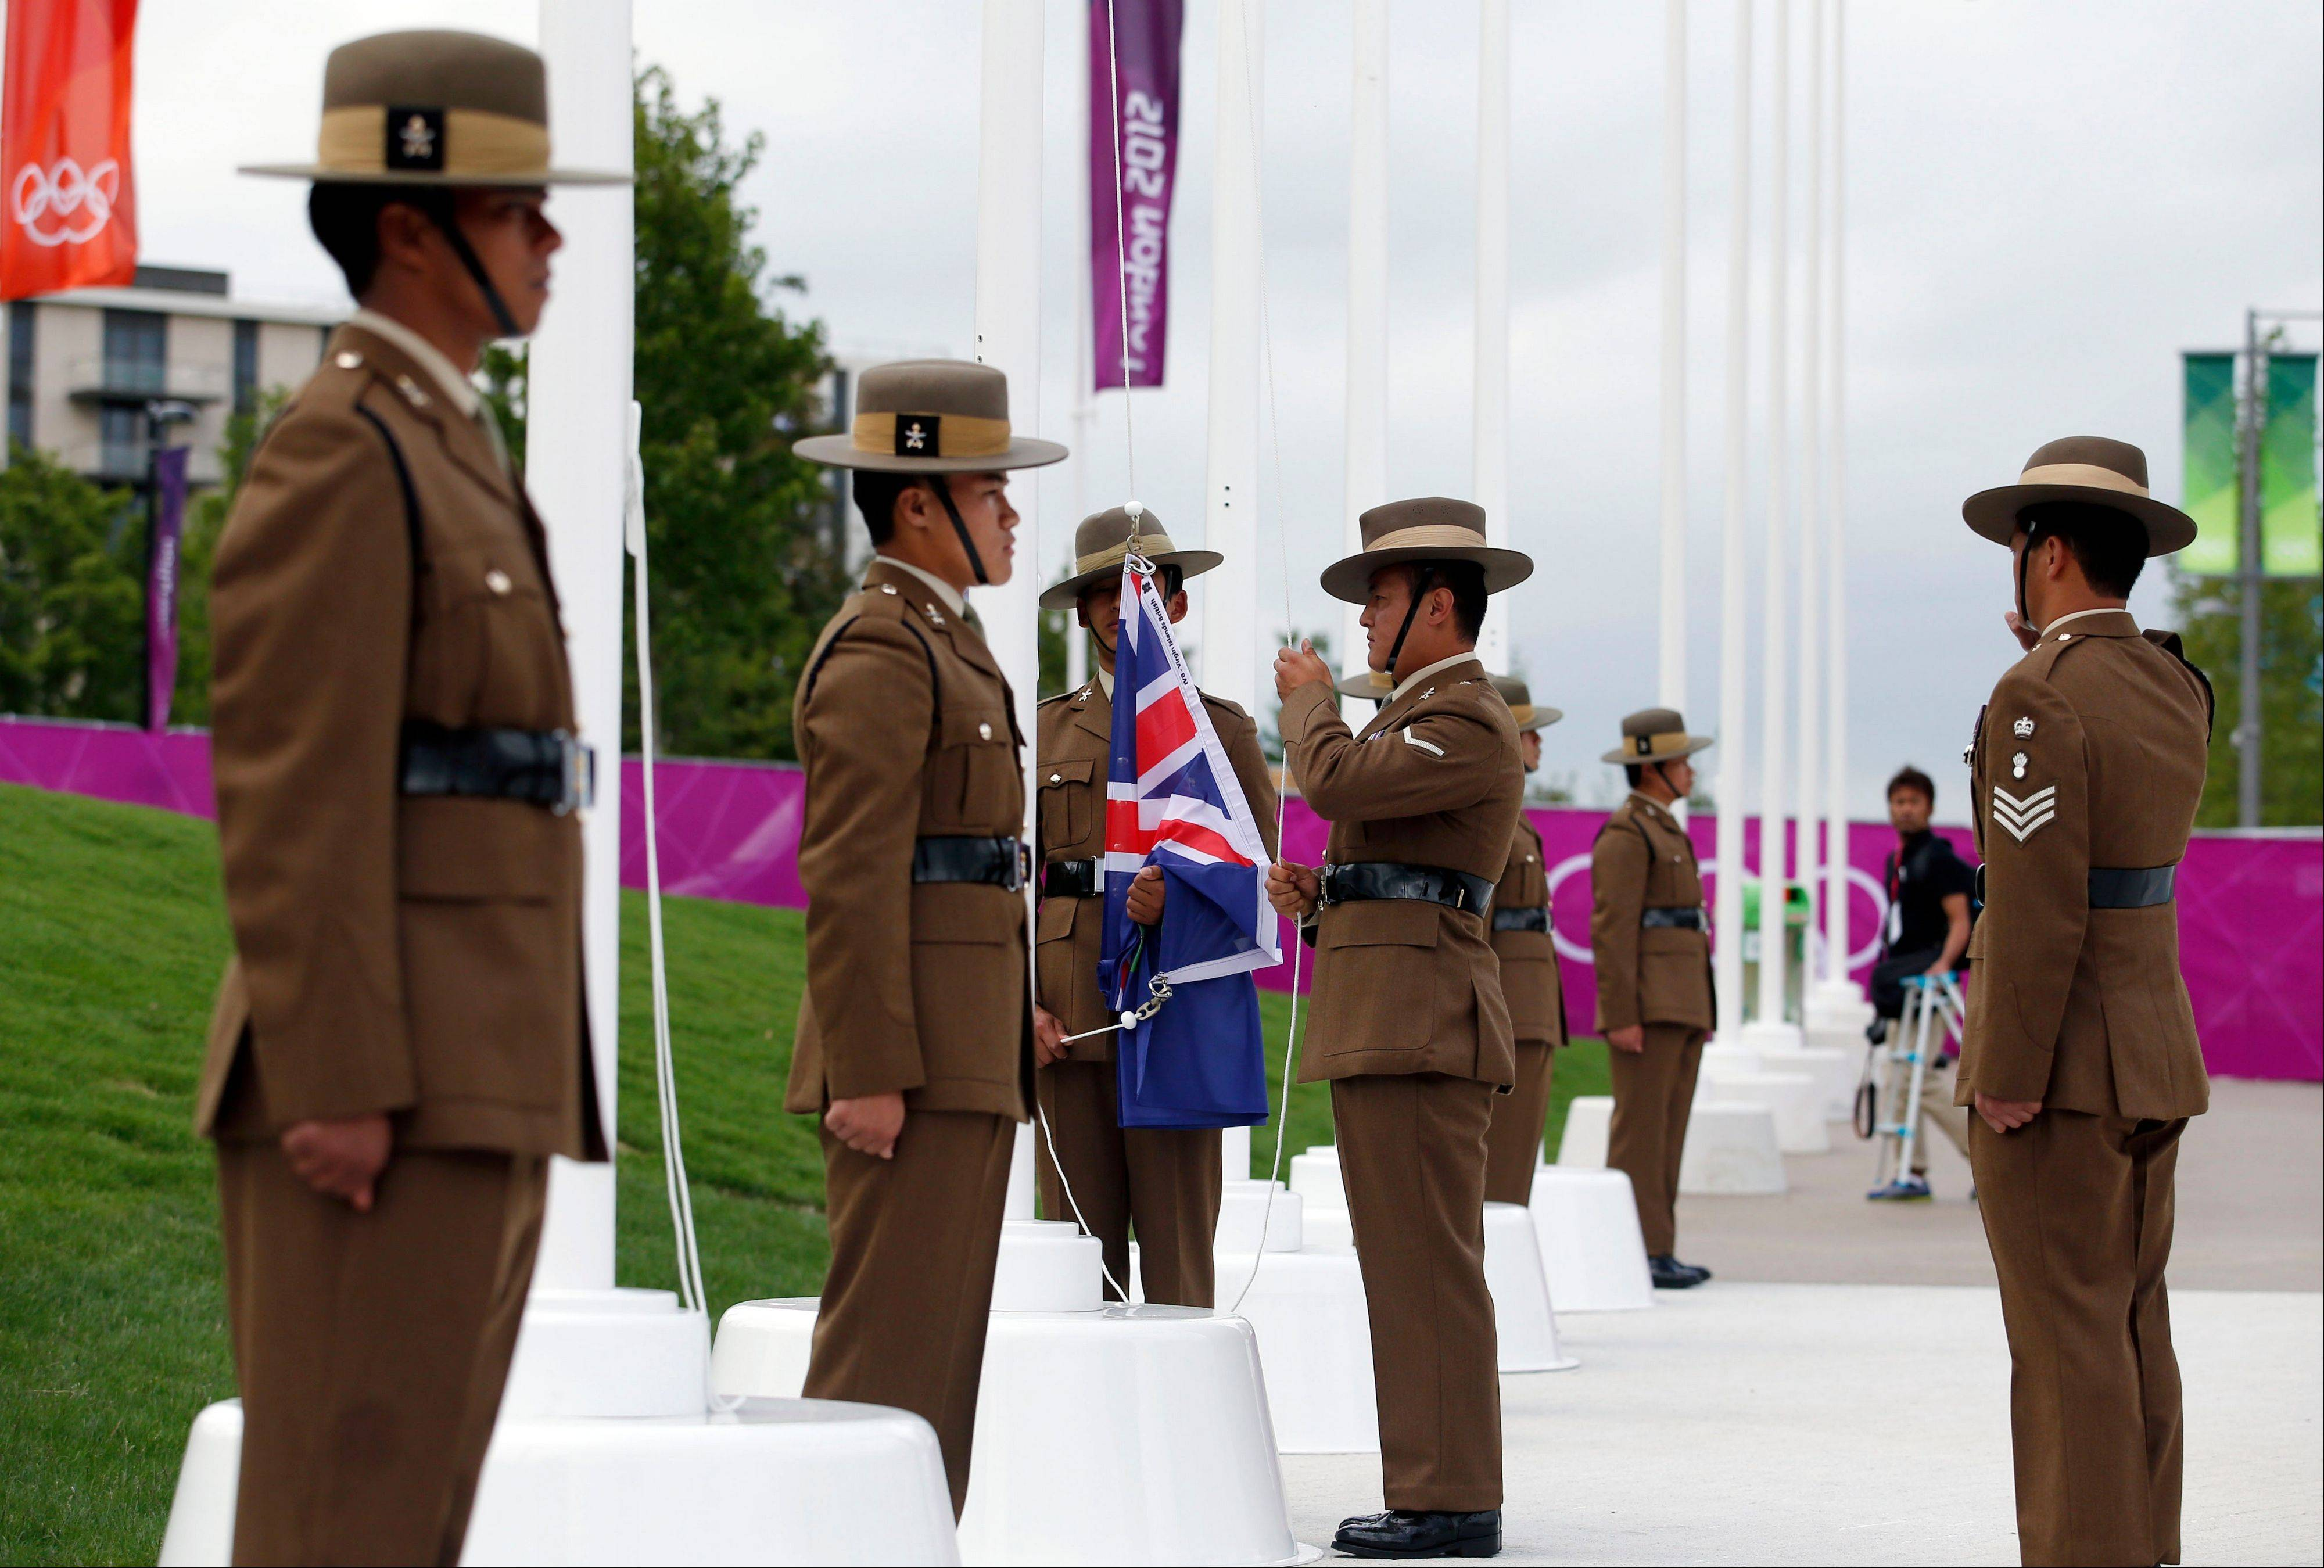 Flag raisers from the British Army raise a British Virgin Islands flag during the Olympic Team Welcome Ceremony at the Olympic Village for the 2012 Summer Olympics, Tuesday, July 17, 2012, in London. Opening Ceremonies for the London Olympics will be held Friday July 27, 2012.